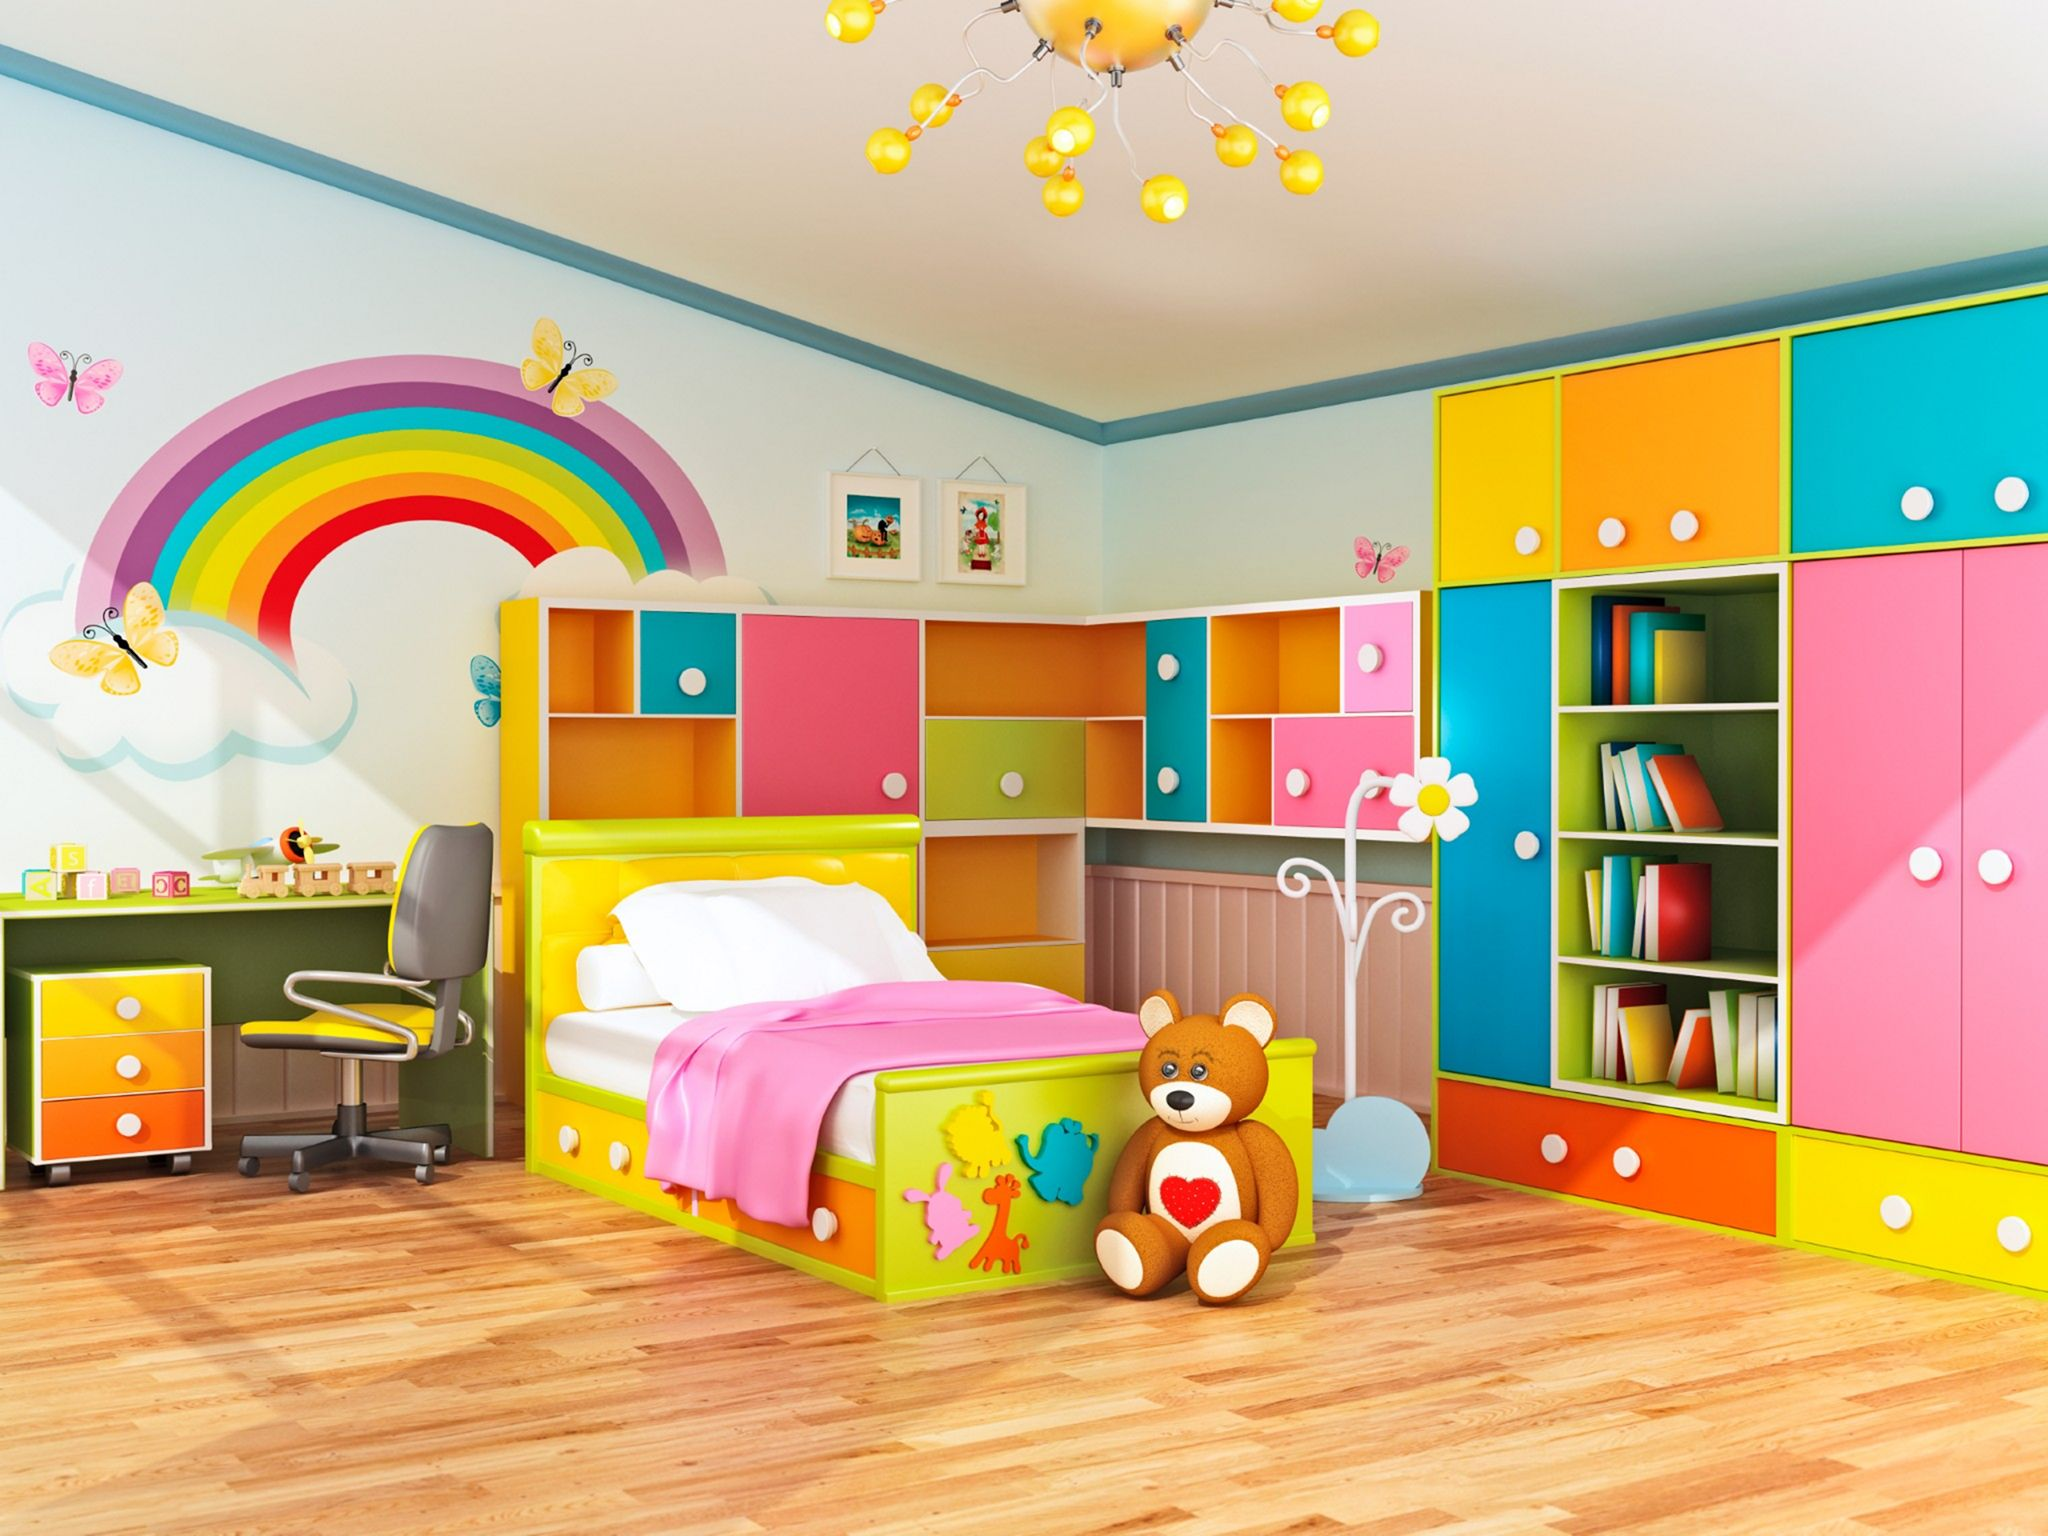 22 Stunning Kids Room Designs For More Fun And Comfortable ...